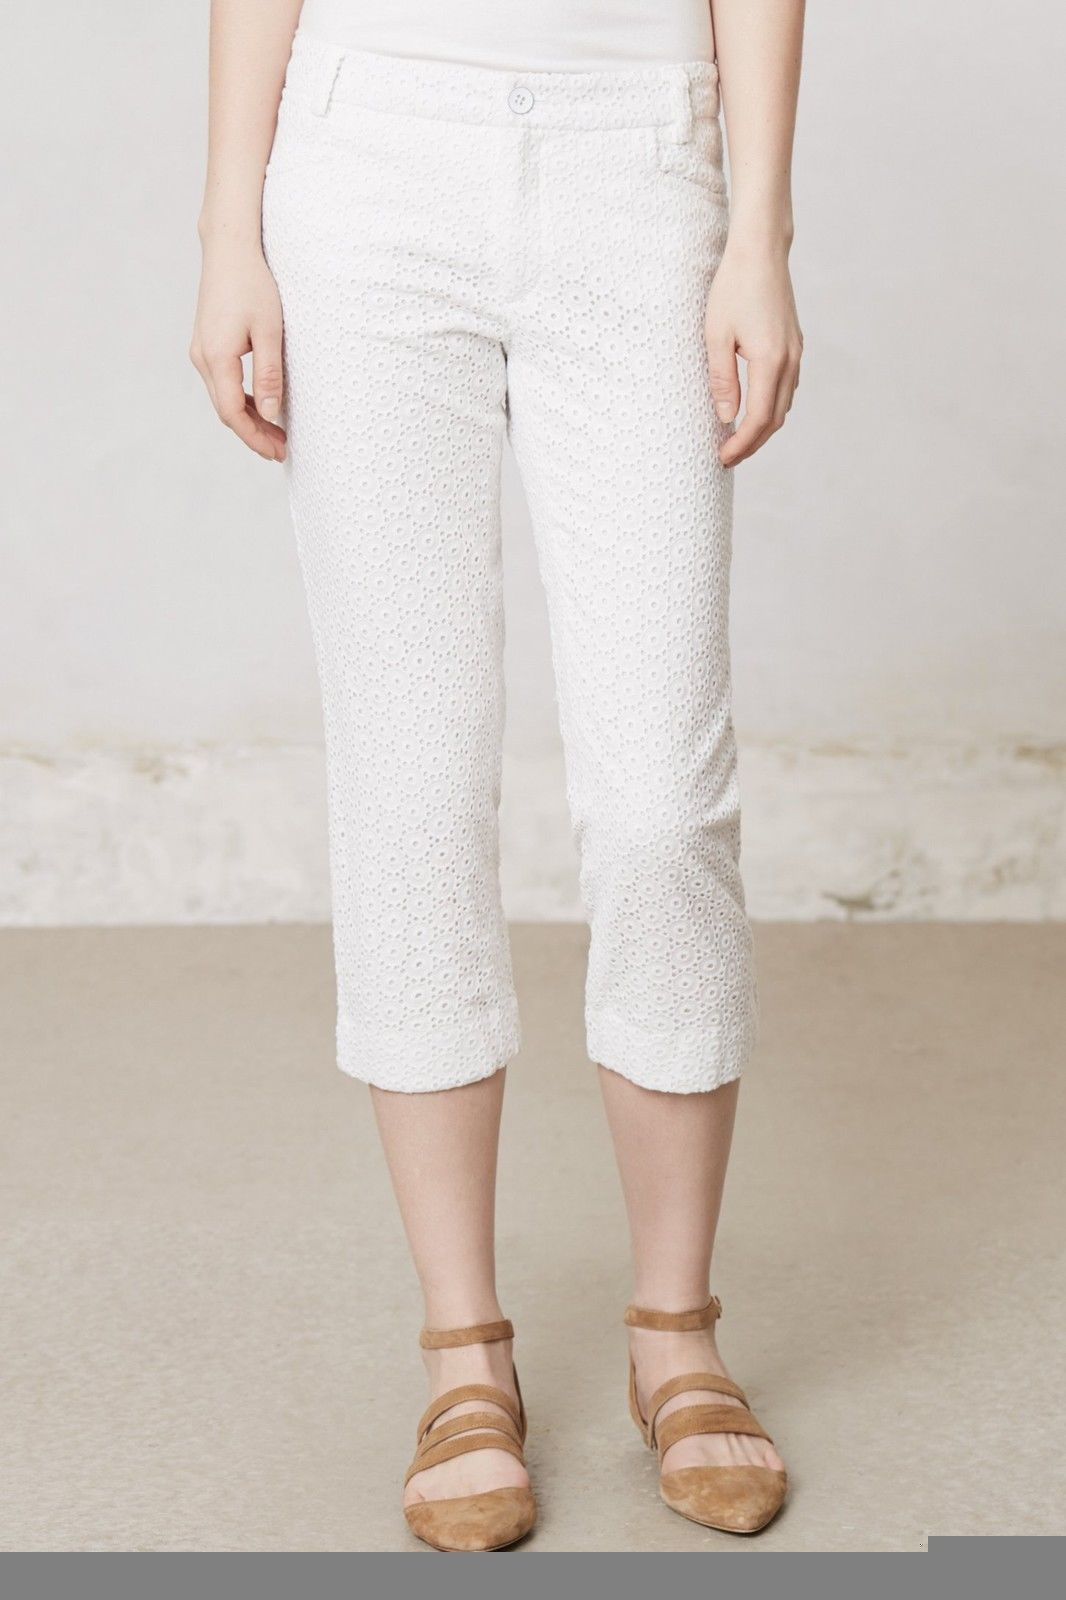 NWT ANTHROPOLOGIE CHARLIE CROPPED EYELET WHITE CROPS PANTS by CARTONNIER 4 - $55.24